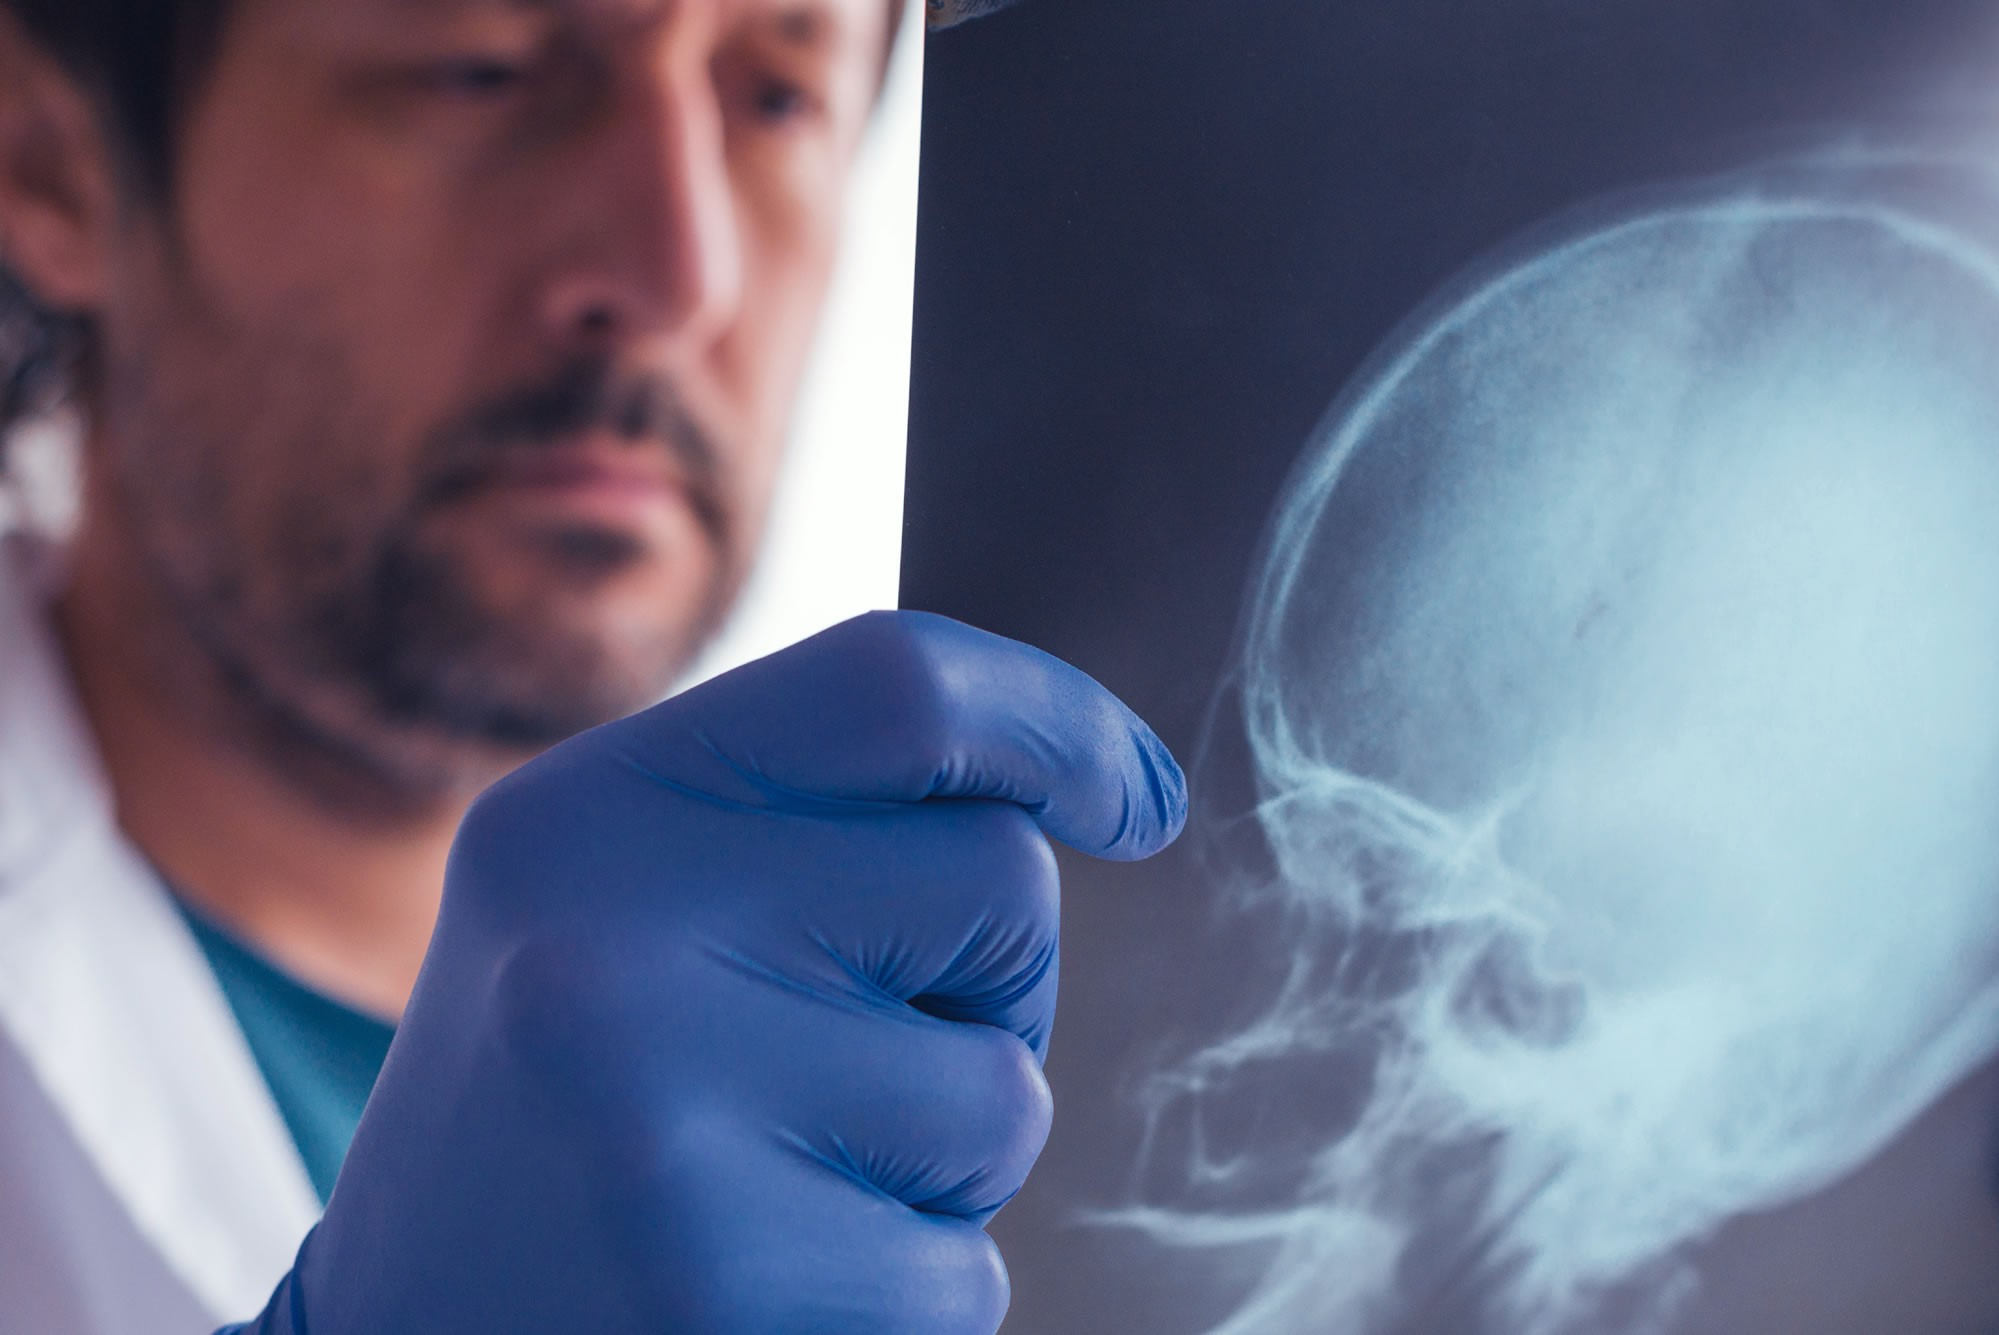 Doctor Head, Brain Injuries - Personal Injury Claim Experts / No Win, No Fee / Accident Claims UK